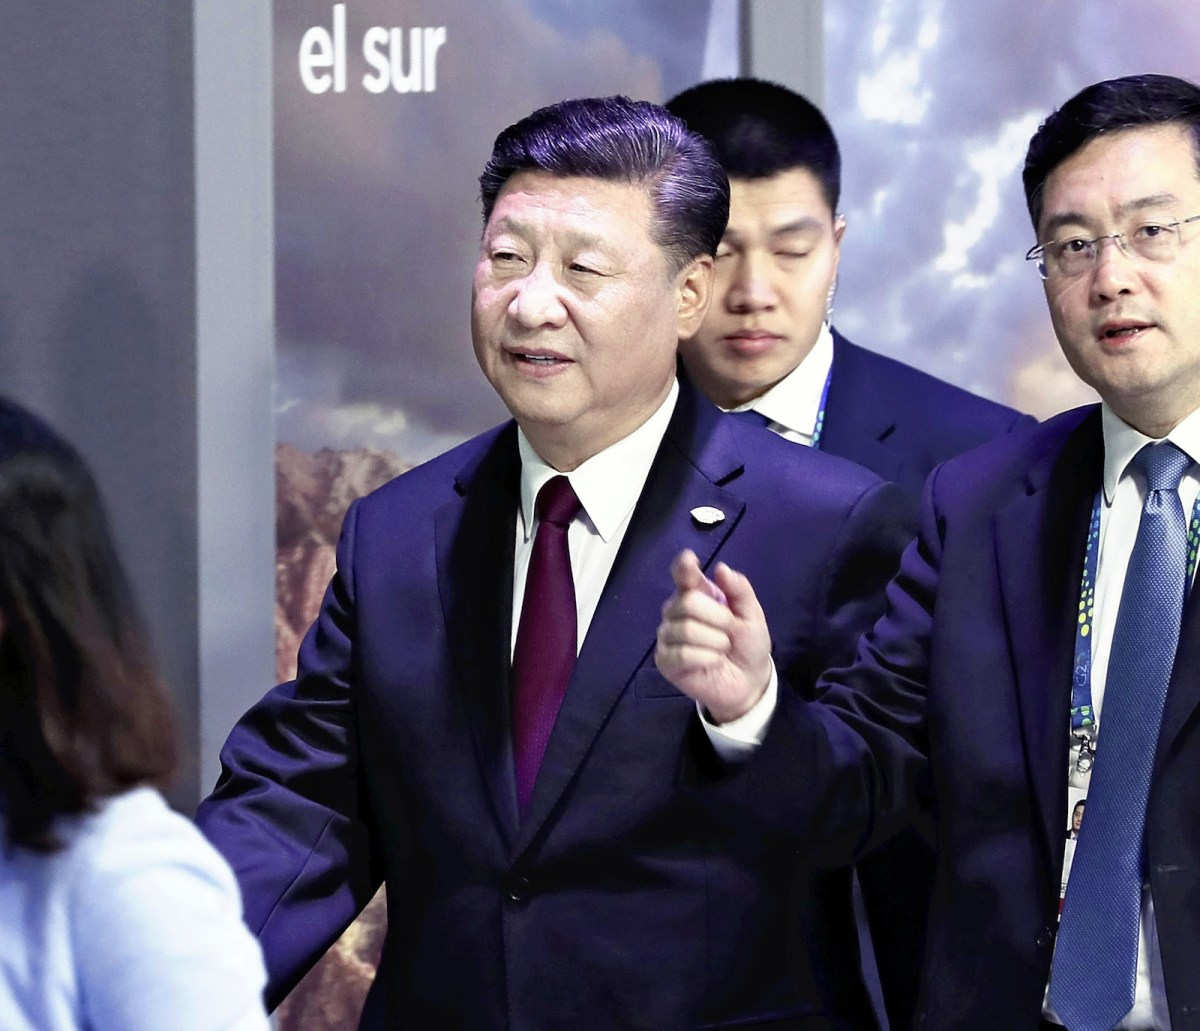 Chinese President Xi Jinping arrives at the venue of G20 summit conference in Buenos Aires, Argentina, on November 30, 2018. Photo: AFP Forum via The Yomiuri Shimbun